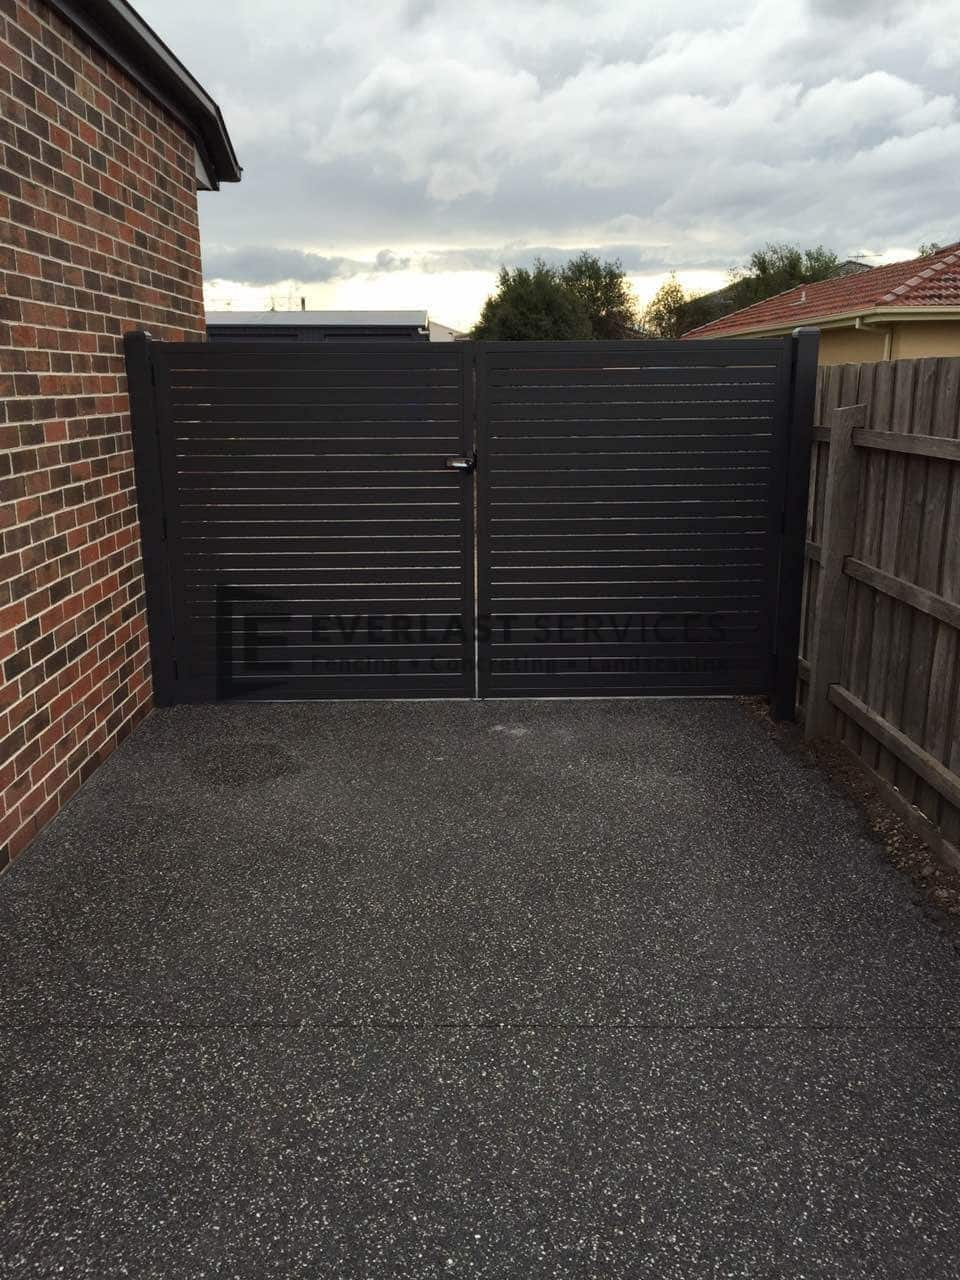 DG19 - Charcoal Slats Double Gate